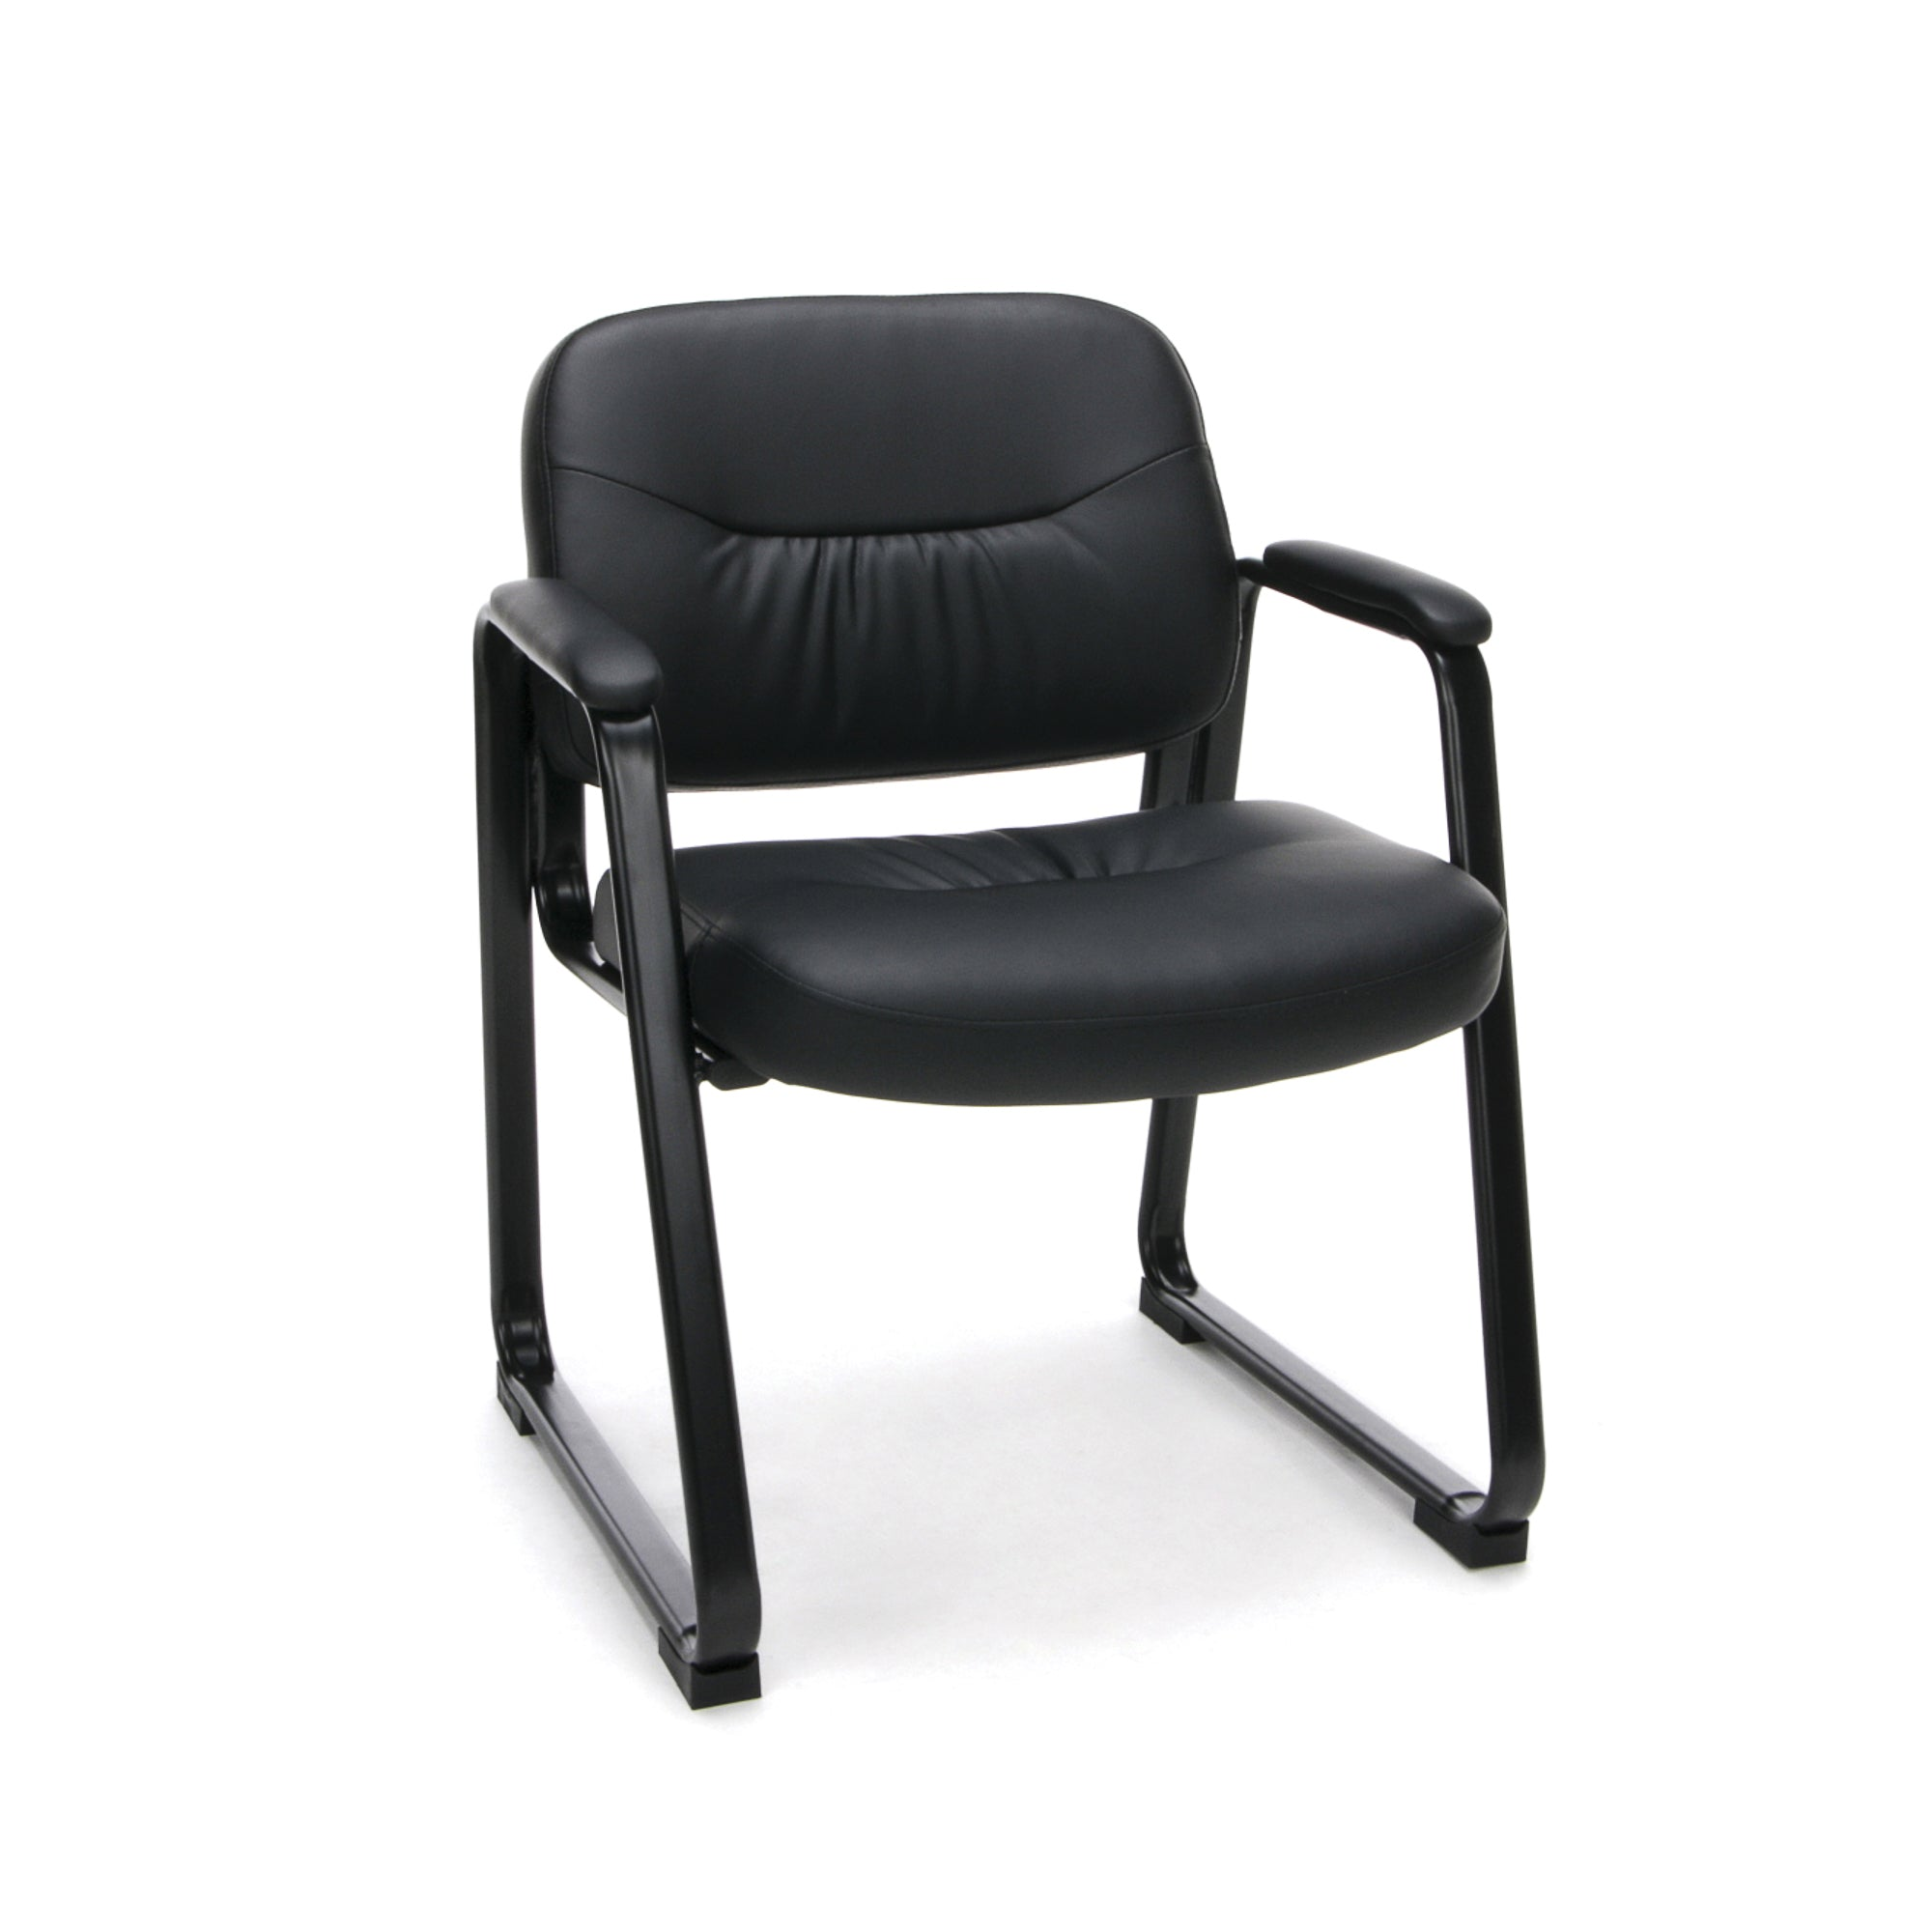 ESS-9015 Essentials by OFM Executive Leather Side Chair with Sled Base